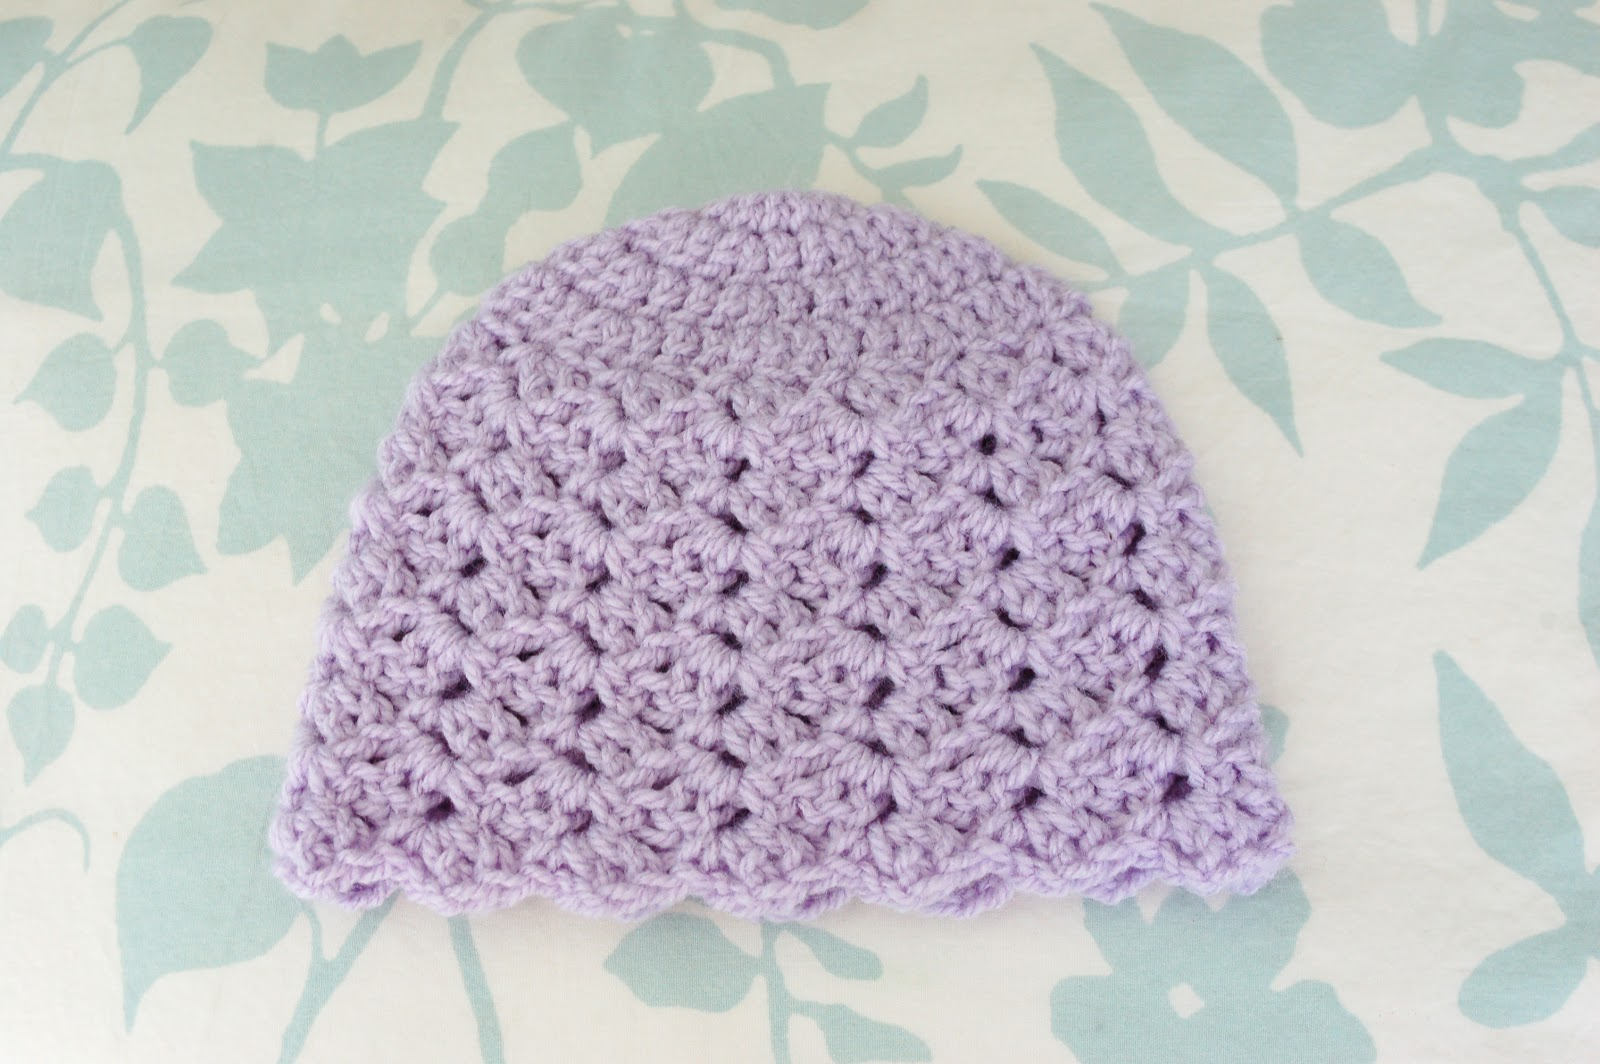 Free Crochet Pattern For Infant Hat : Alli Crafts: Free Pattern: Tulip Stitch Hat - Newborn